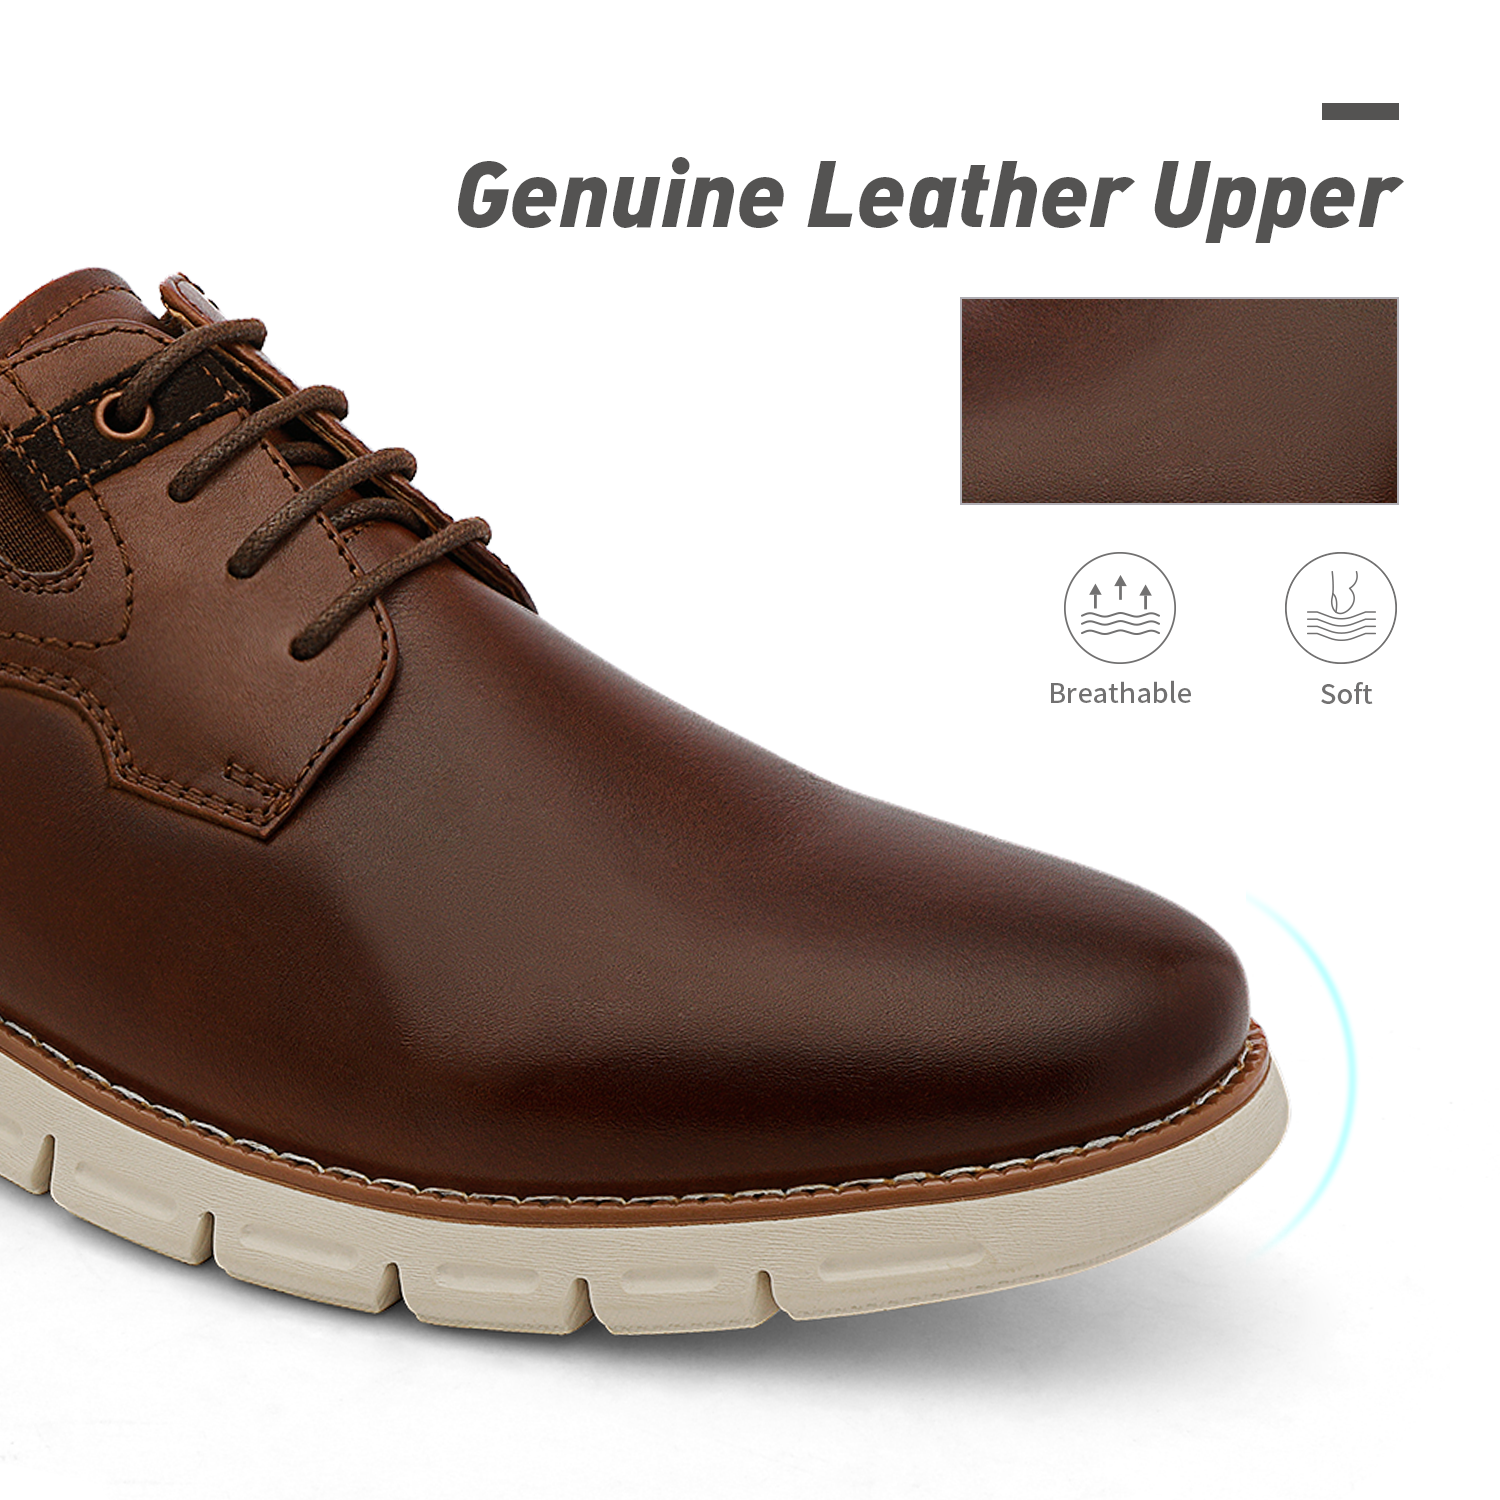 Men-s-Genuine-Leather-Casual-Formal-Sneakers-Lace-up-Business-Oxford-Dress-Shoes thumbnail 48